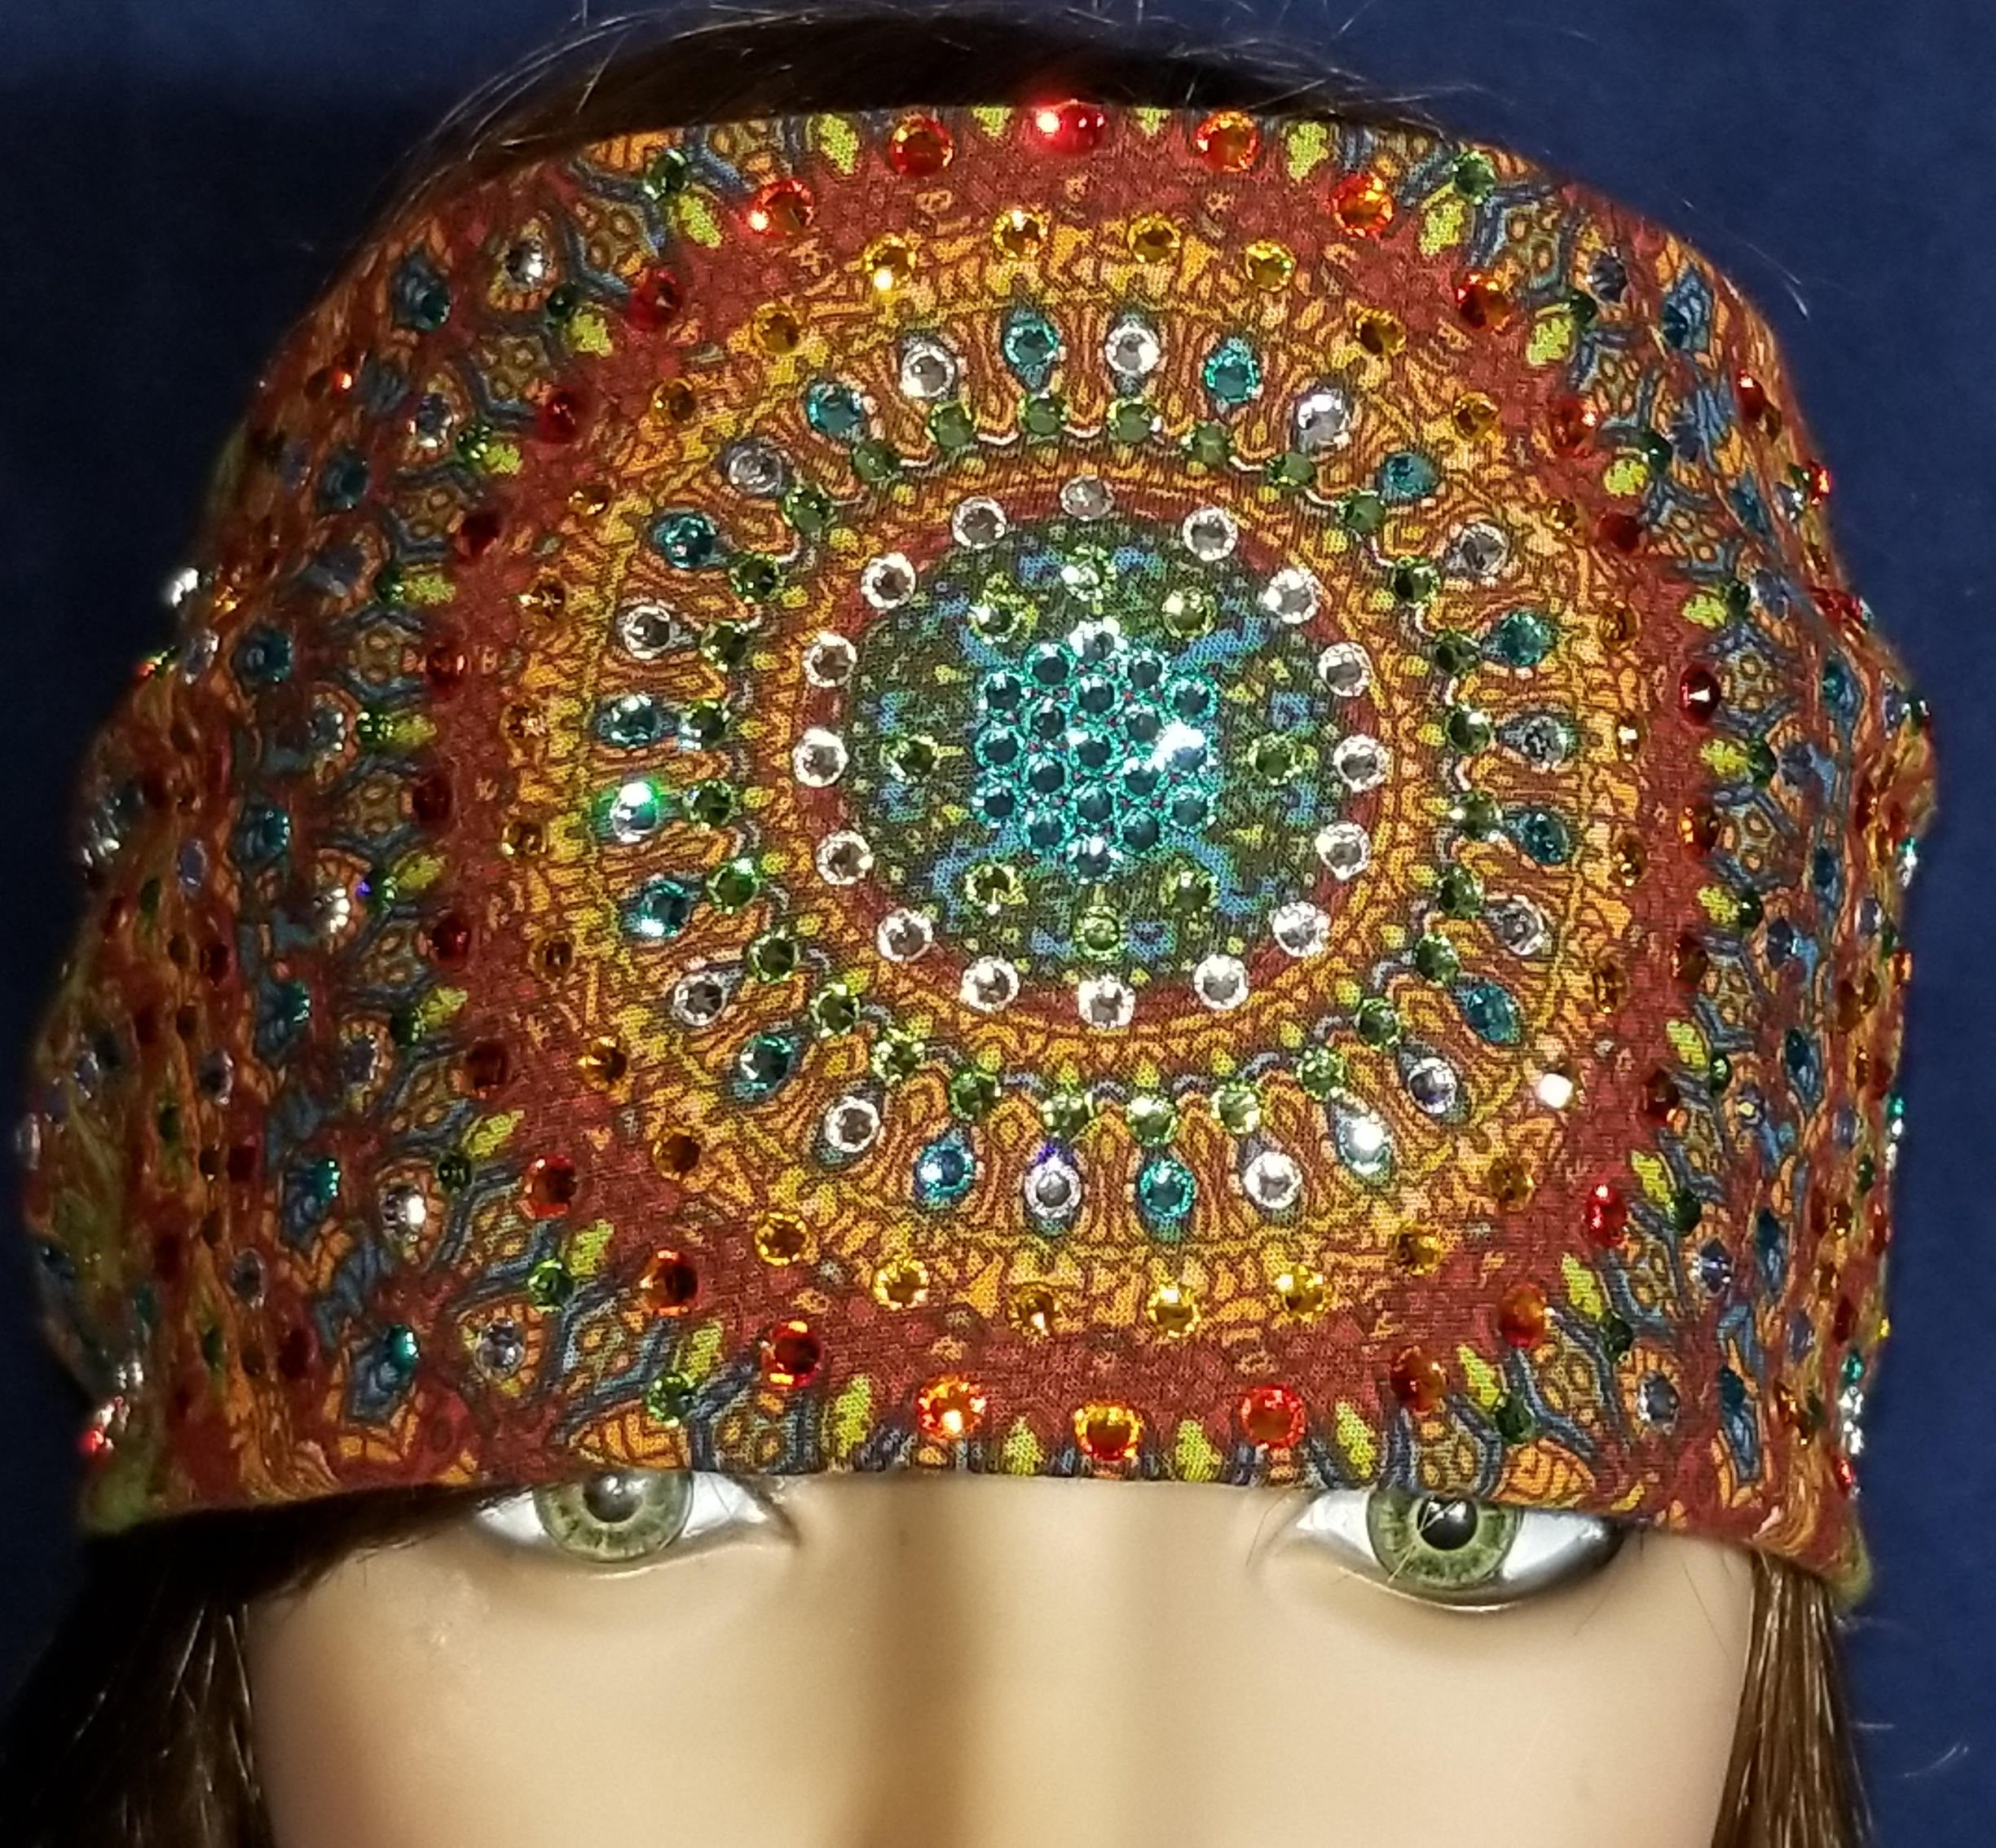 LeeAnnette Grateful Dead bandana With turquoise crystals in the center over 300 swarovski crystals (Sku4030)